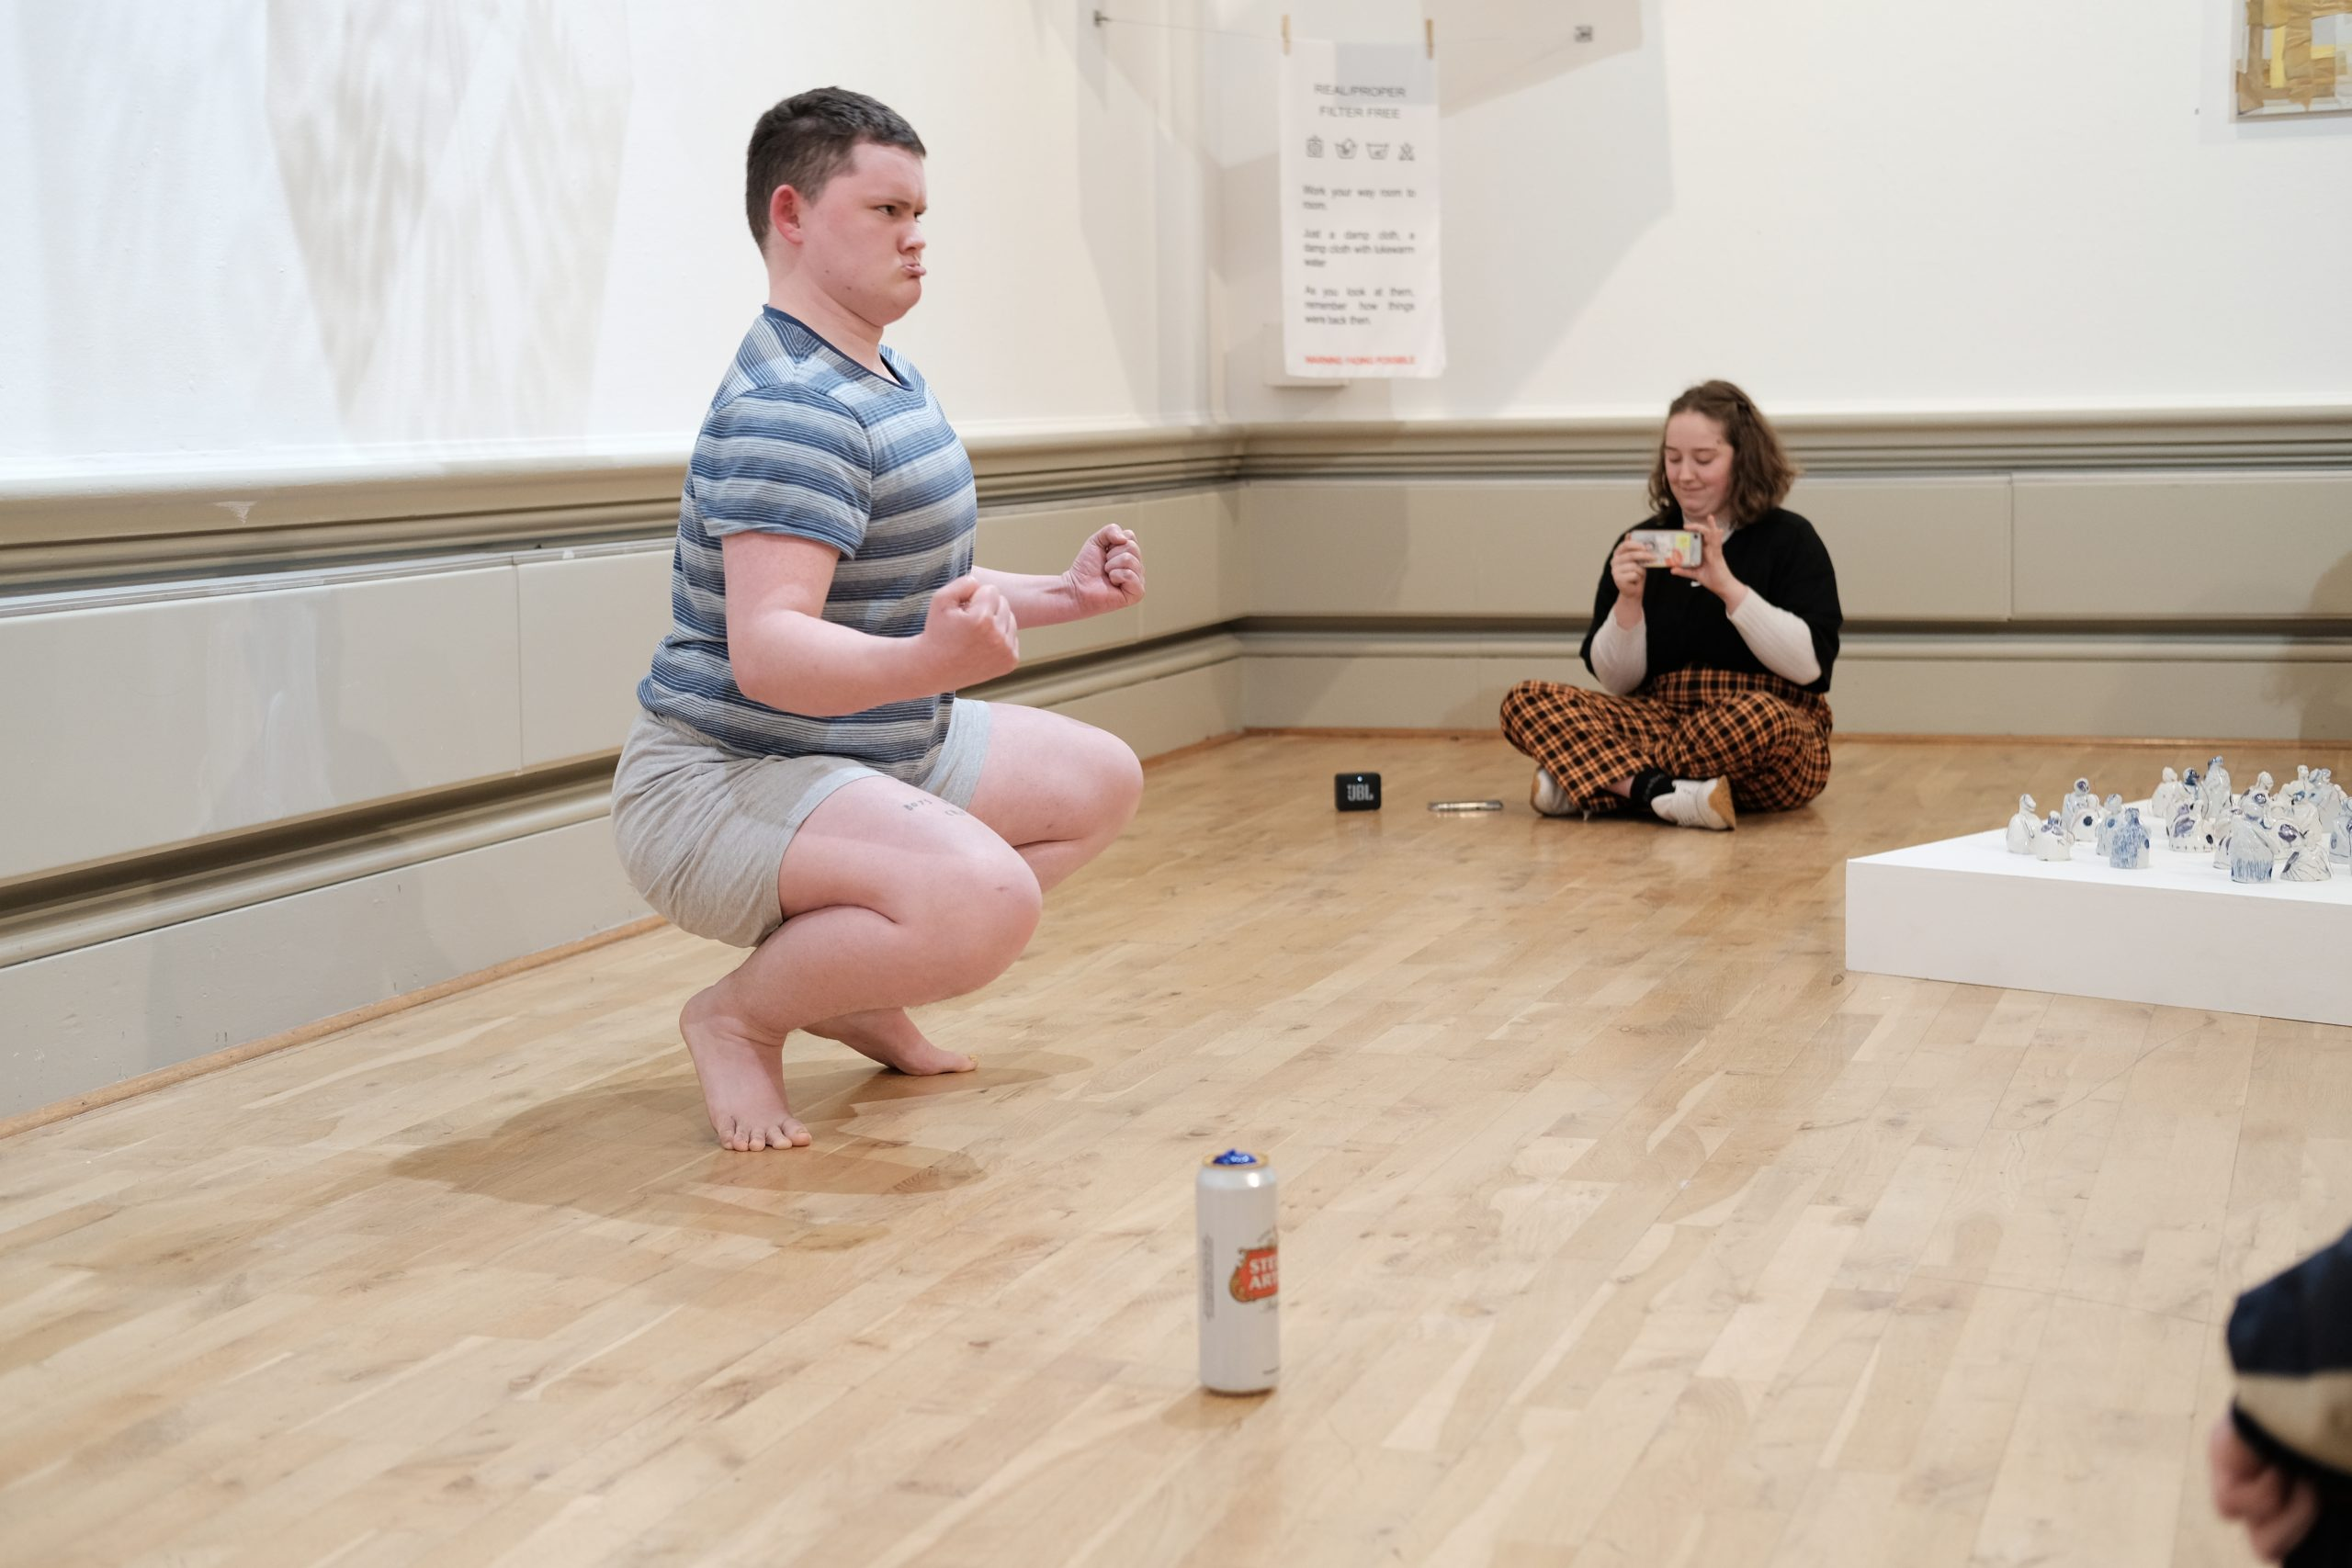 Image of Theo Seddon squating on the floor in the exhibition gallery, clenching his fists and performing part of his piece titled 'Dawn of Man'